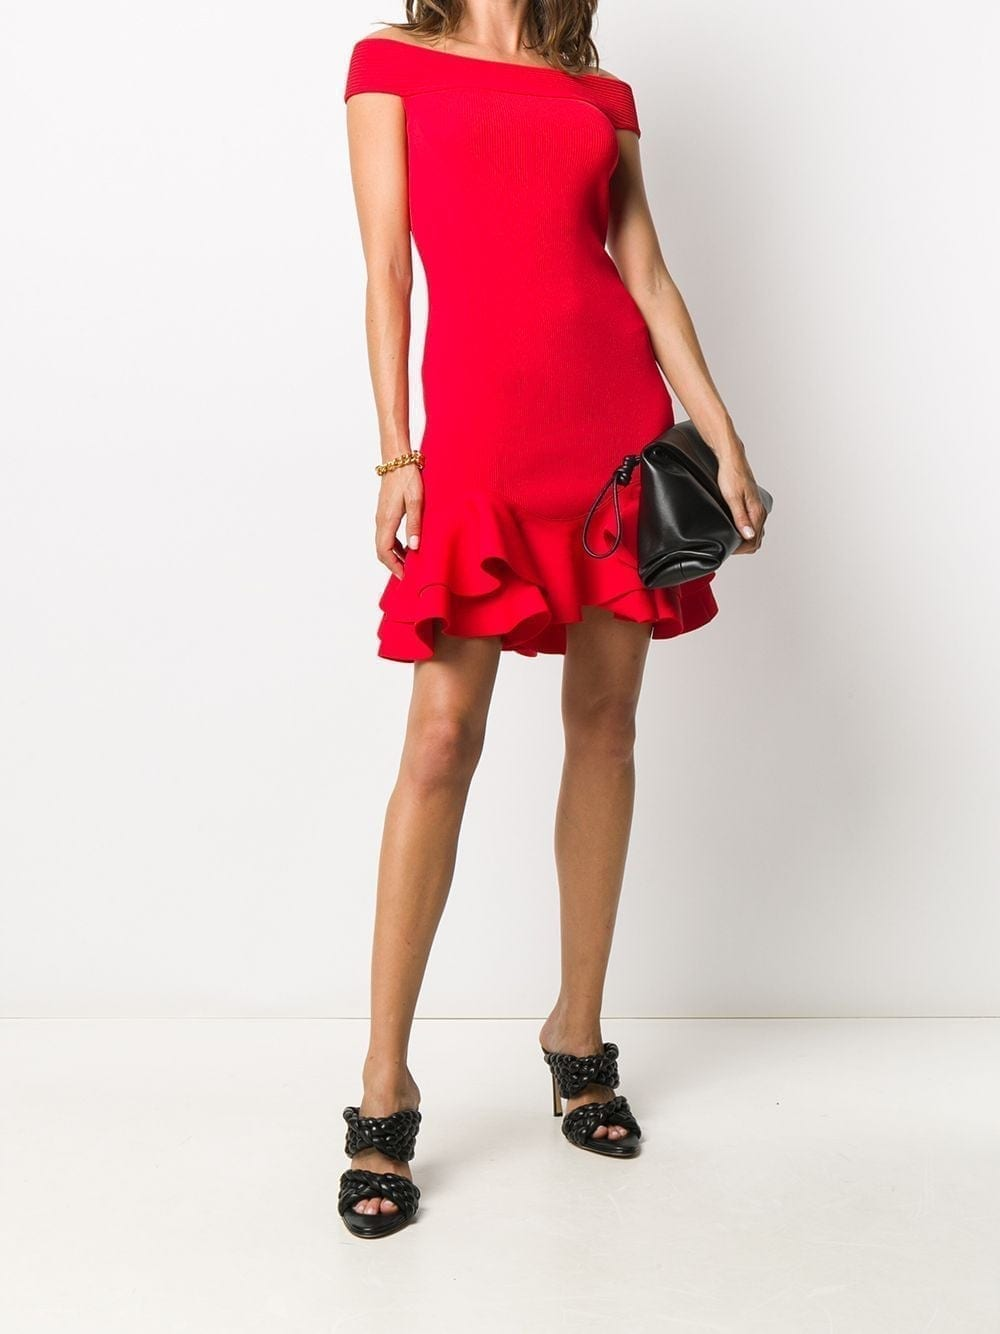 ALEXANDER MCQUEEN Flounced Hem Dress